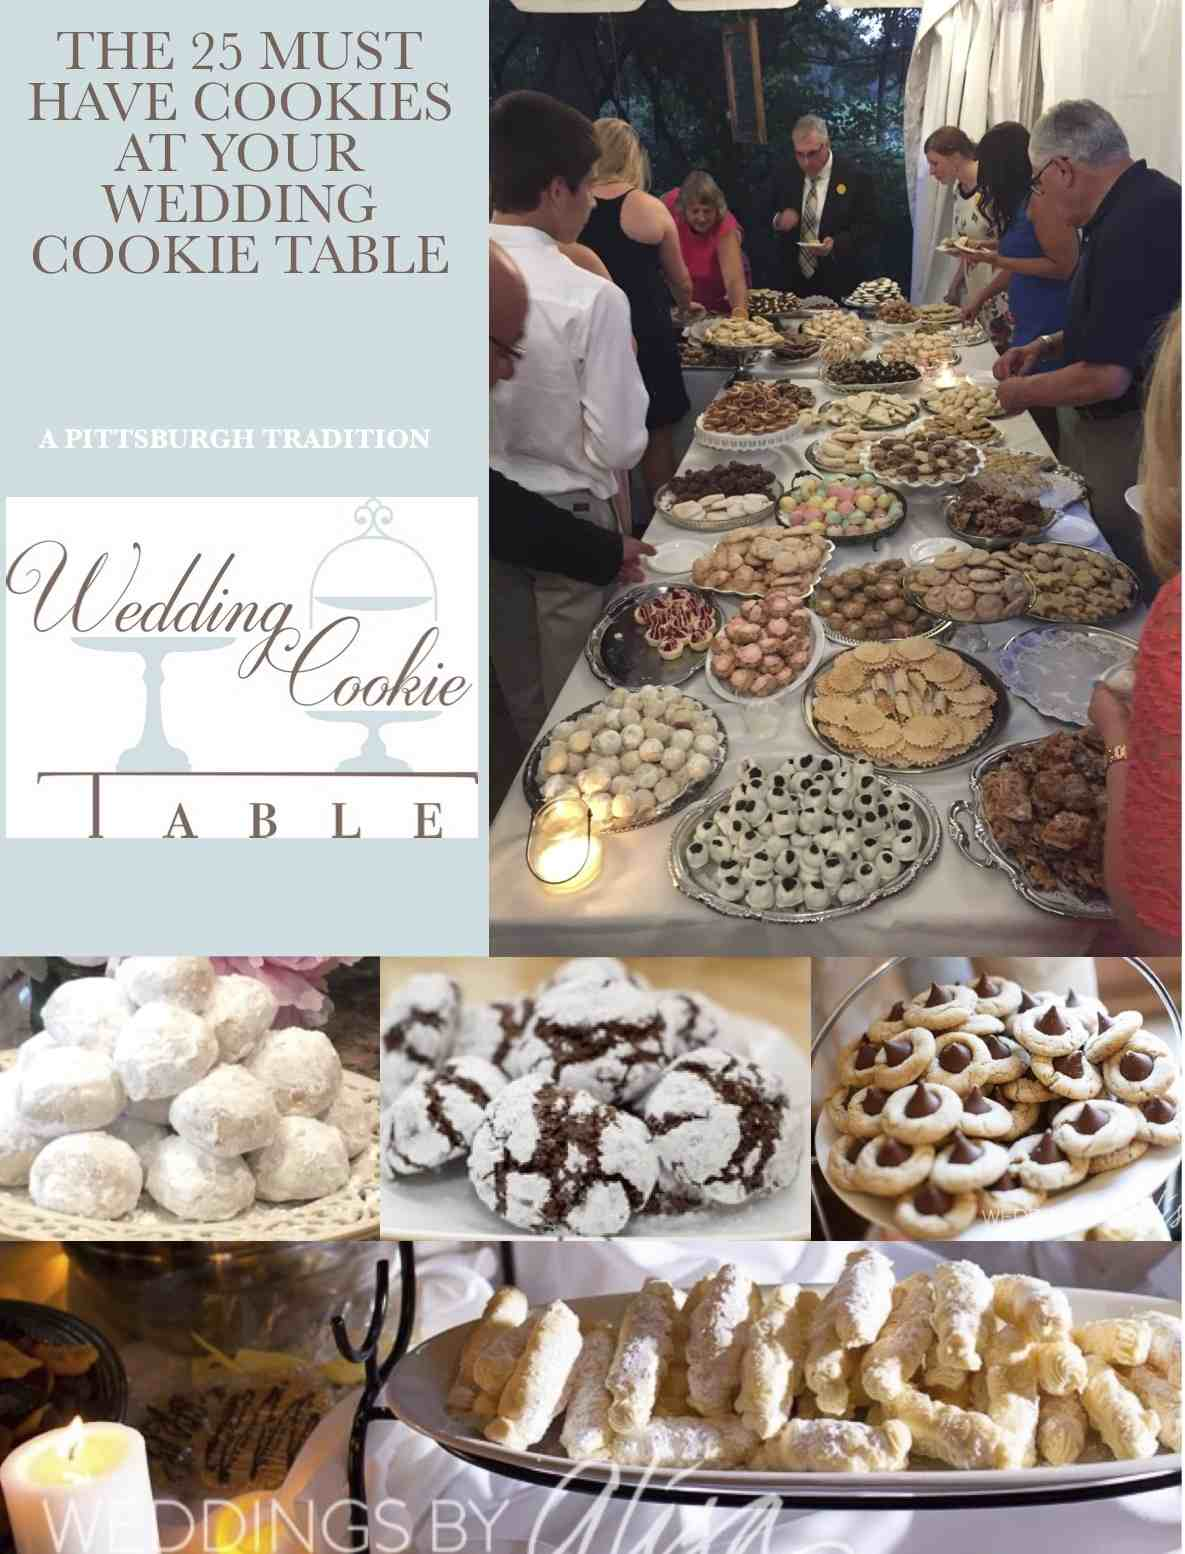 wedding cookies are the pride and joy of the families who baked them and the bride and groom who showcase them the founders of wedding cookie table joined